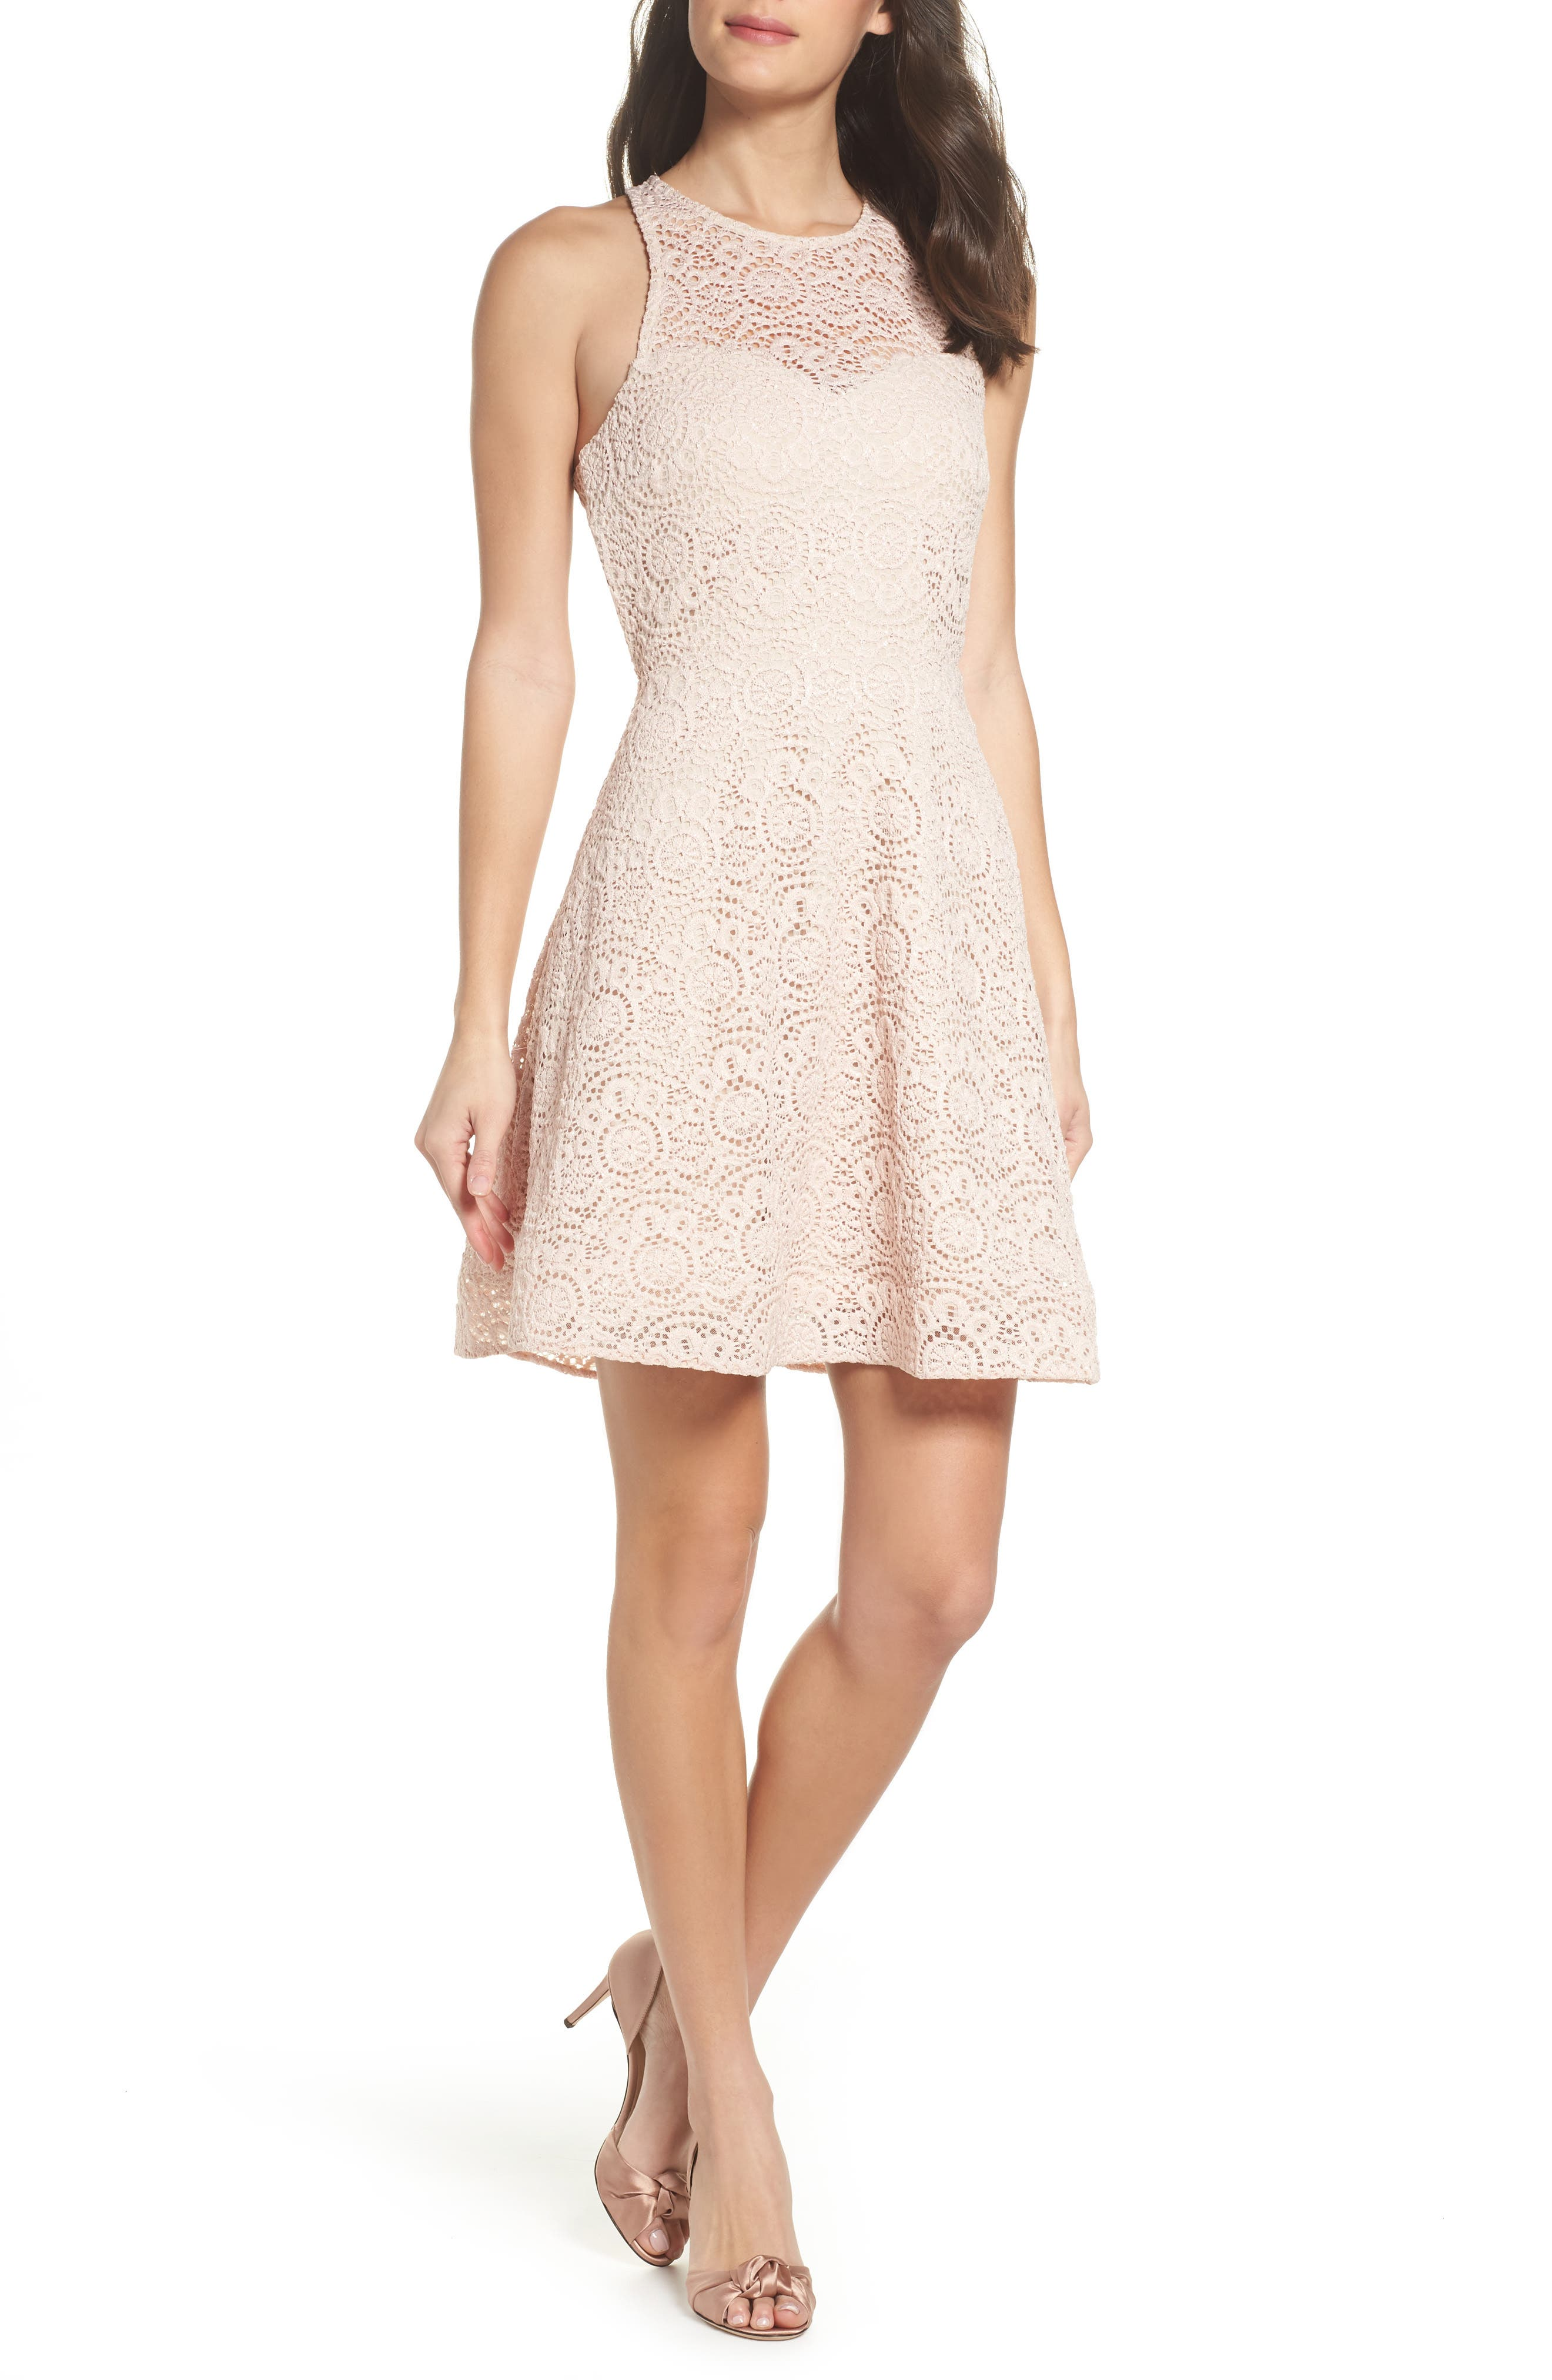 Main Image - Sequin Hearts Glitter Lace Strappy Back Party Dress